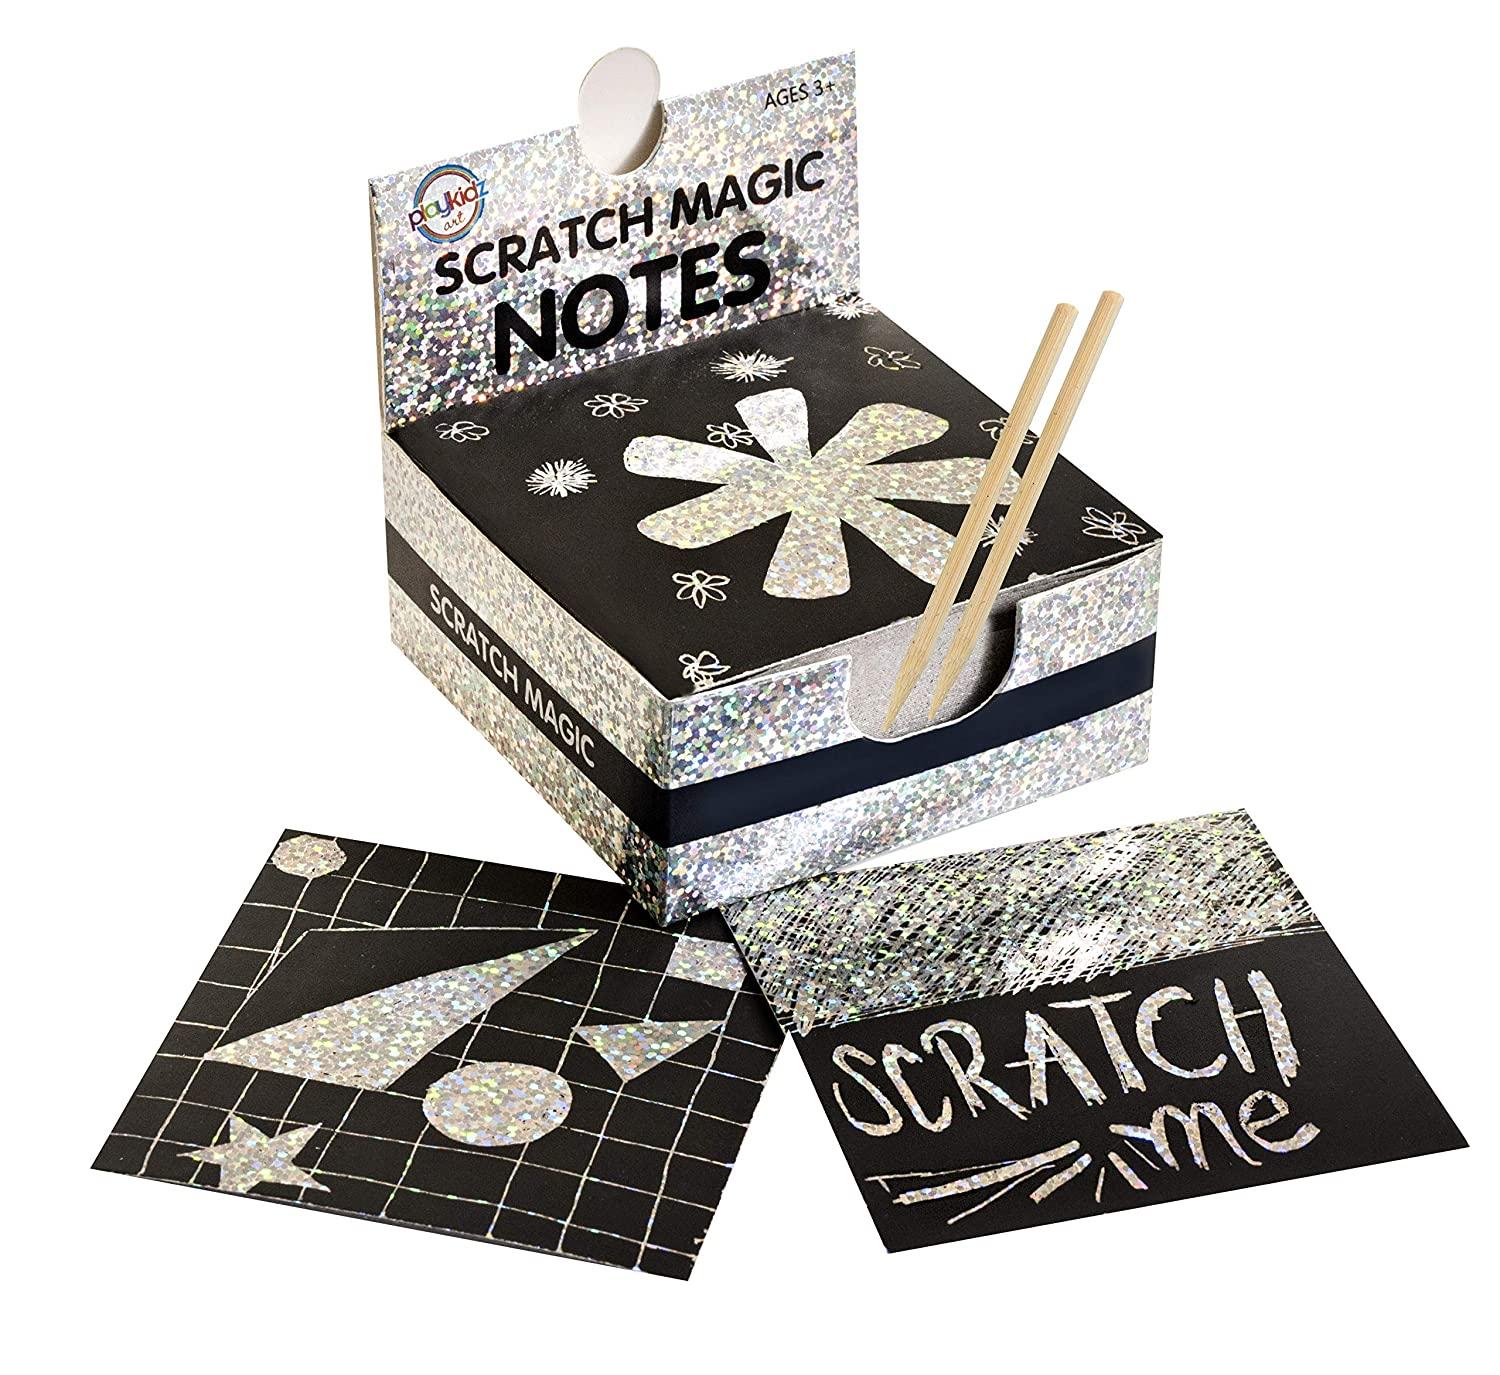 Scratch Art Kit – Magic Scratch Off Notes & [2] Stylus Tools for Kids & Adults – 100 Black Paper Sheets – Create Colorful Holographic Cards, Bookmarks, Notes, Pictures & Other Art Without Ink Playkidz Art